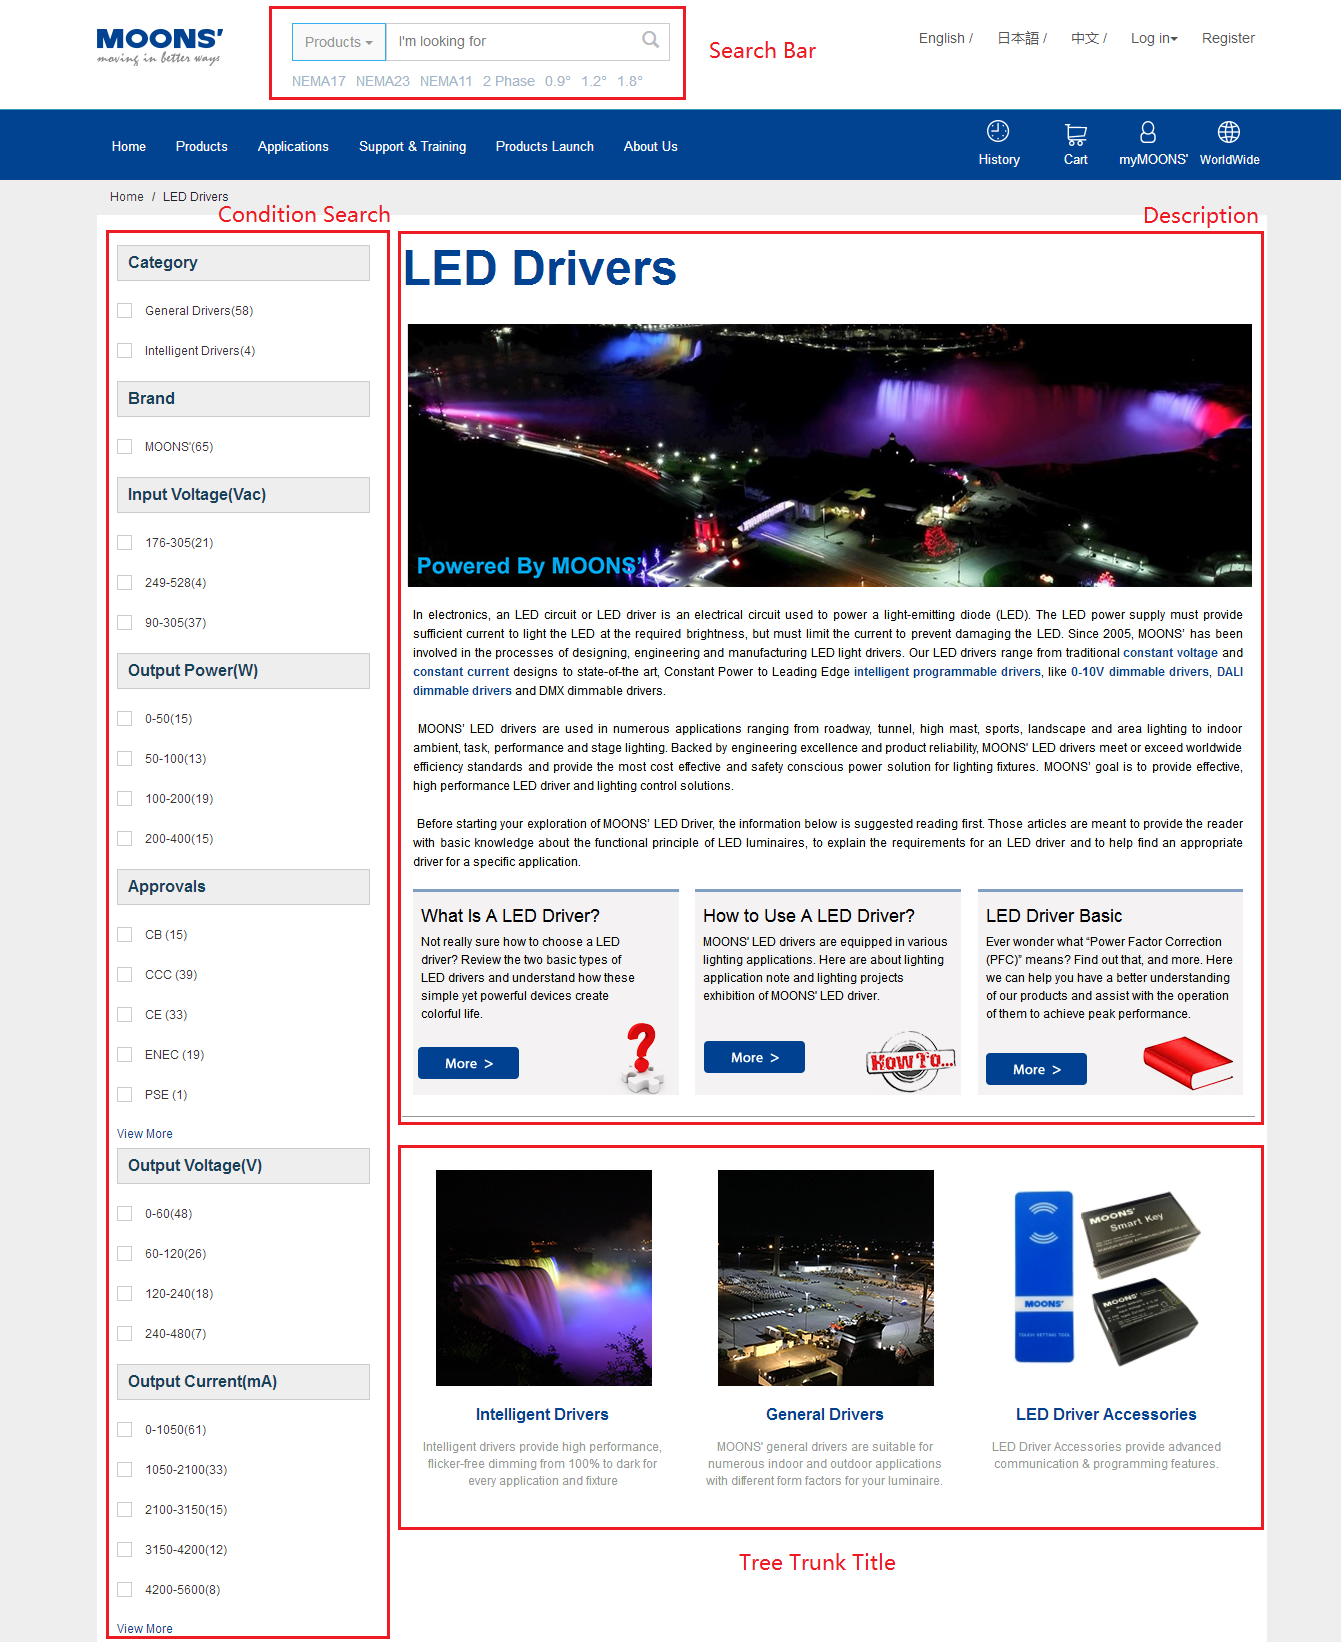 How to Purchase a suitable LED driver on MOONS' Official Website